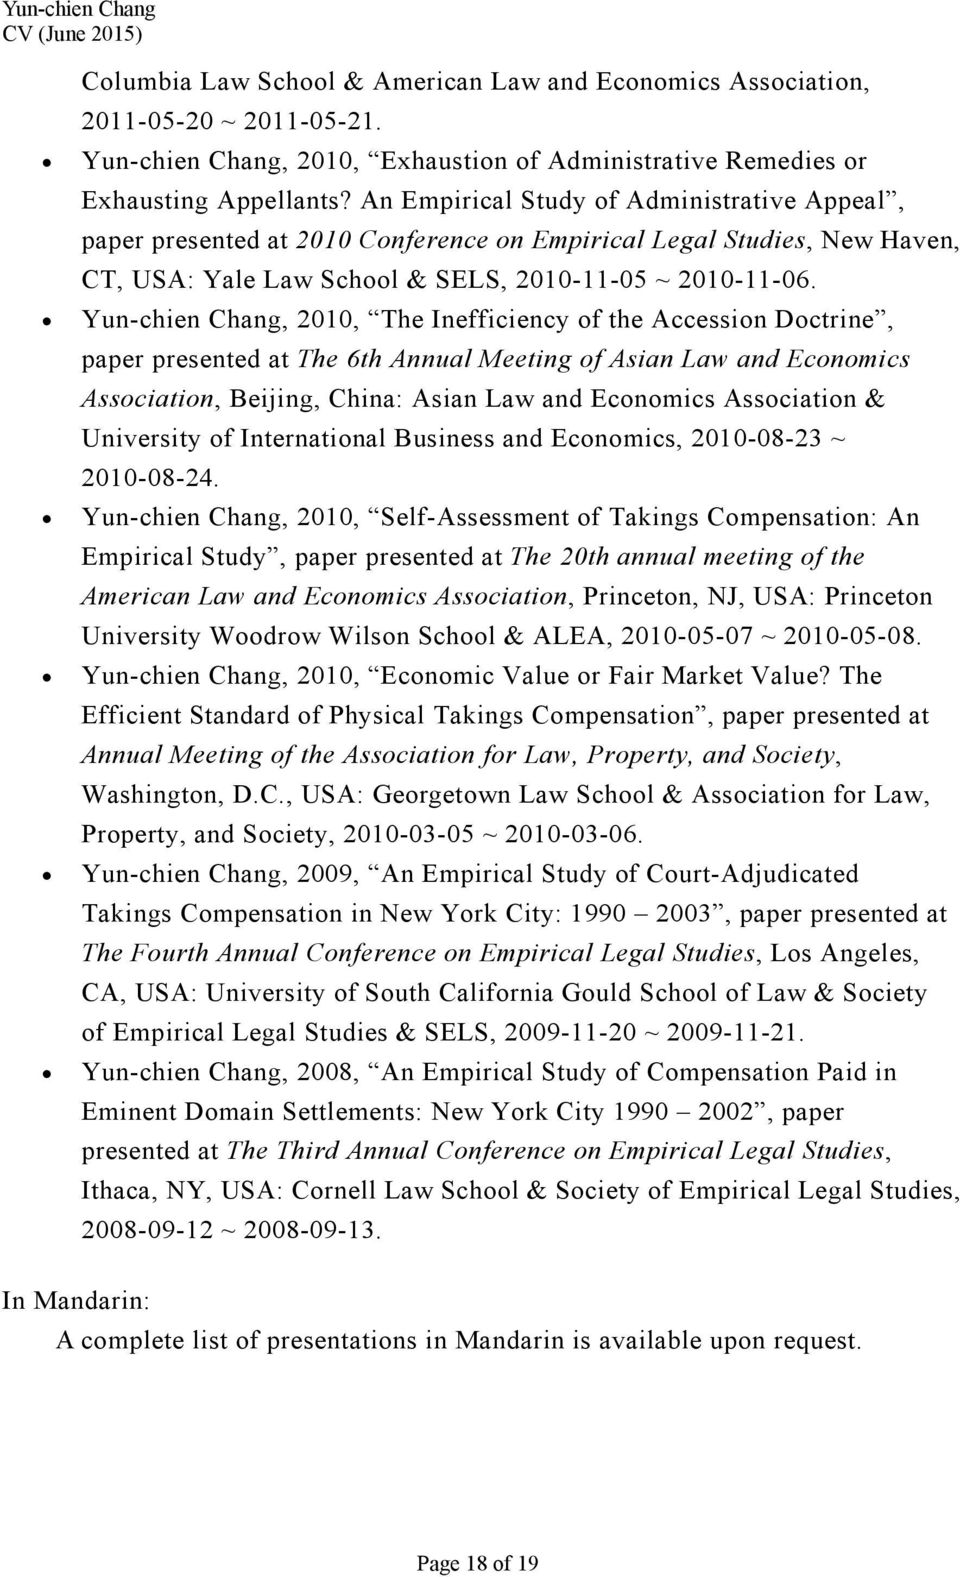 Yun-chien Chang, 2010, The Inefficiency of the Accession Doctrine, paper presented at The 6th Annual Meeting of Asian Law and Economics Association, Beijing, China: Asian Law and Economics